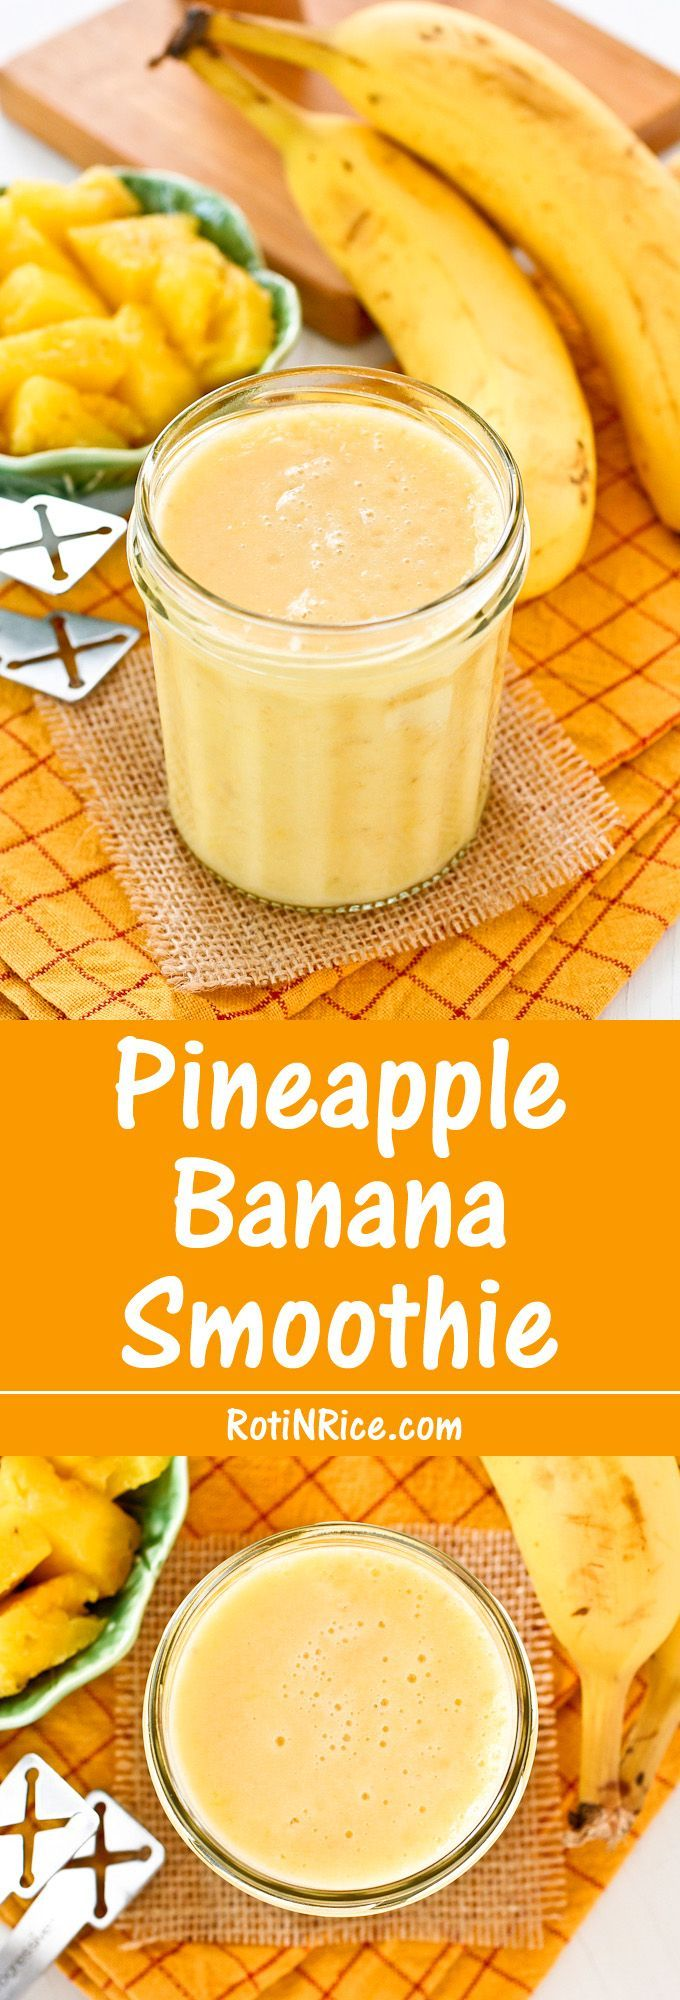 Banana Smoothie Start your day with this delicious Pineapple Banana Smoothie. It's a glass of tropical sunshine with a slight and refreshing tanginess. | Food to gladden the heart at Start your day with this delicious Pineapple Banana Smoothie. It's a glass of tropical sunshine with a slight and refreshing tanginess. | Food to gladden the he...